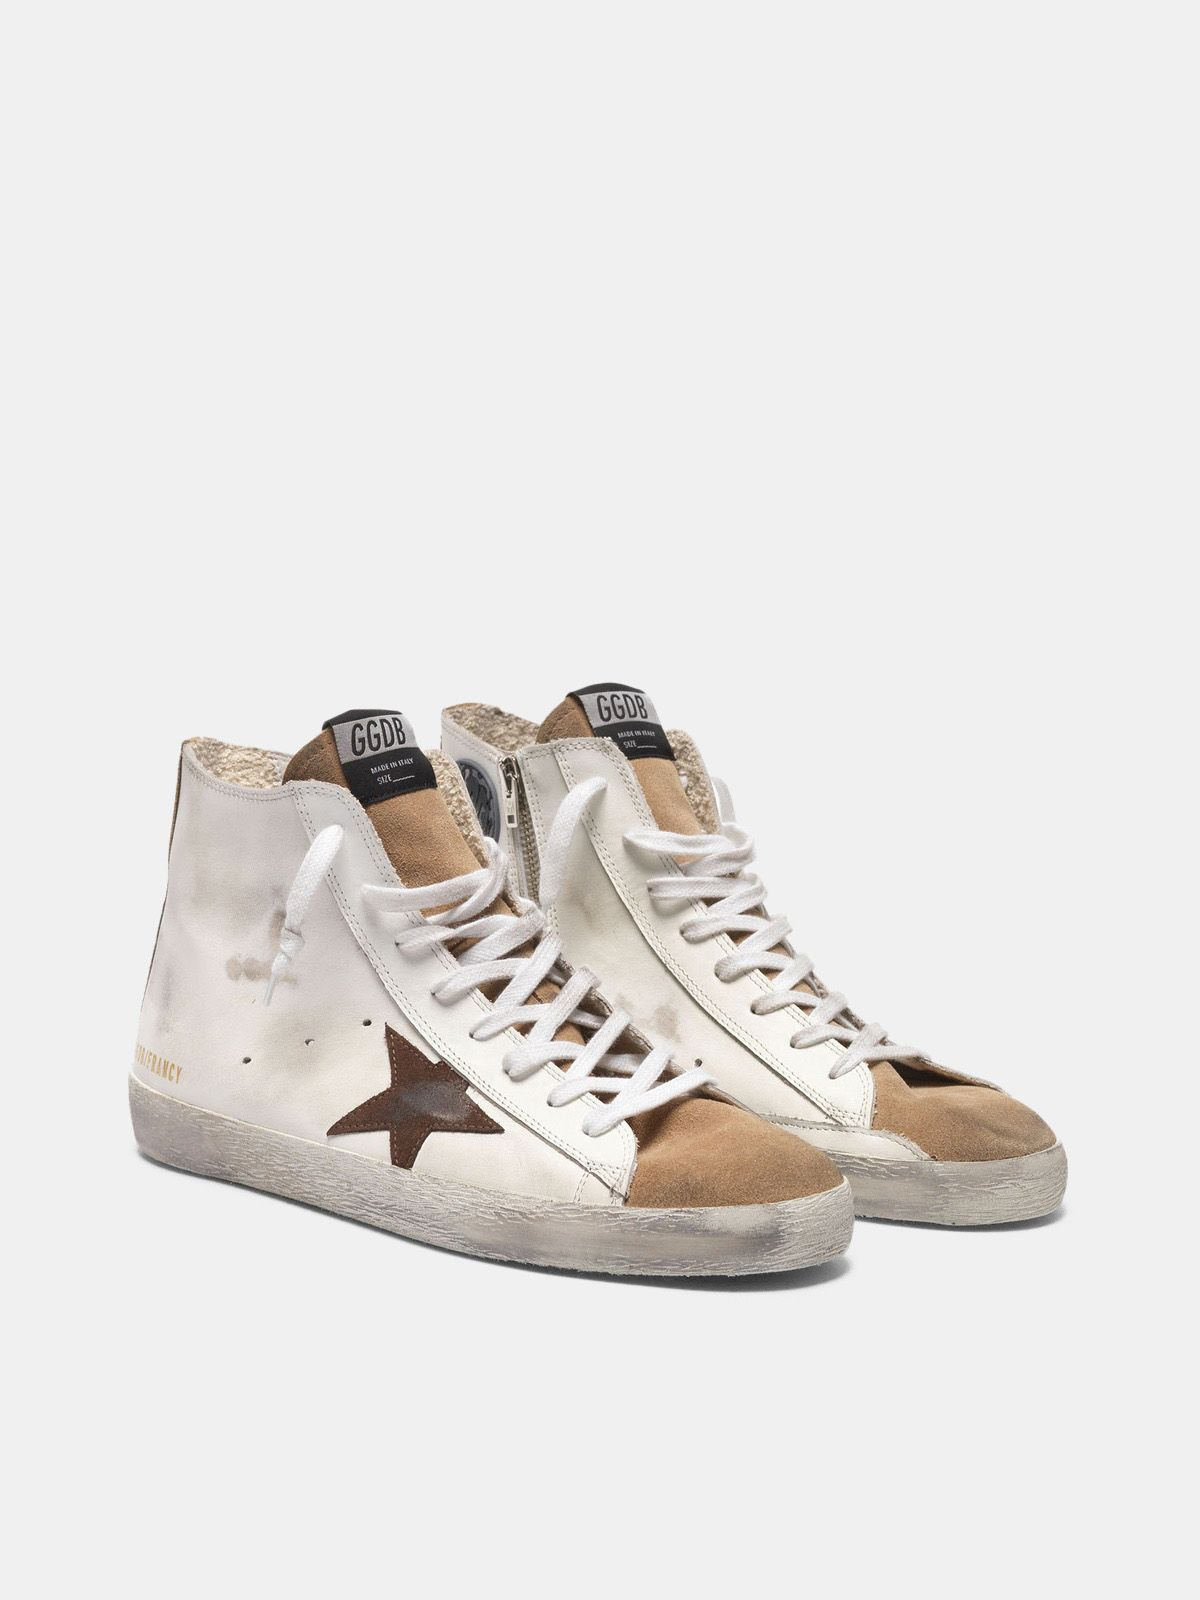 Golden Goose - Francy sneakers in nude suede and white leather with contrast star in